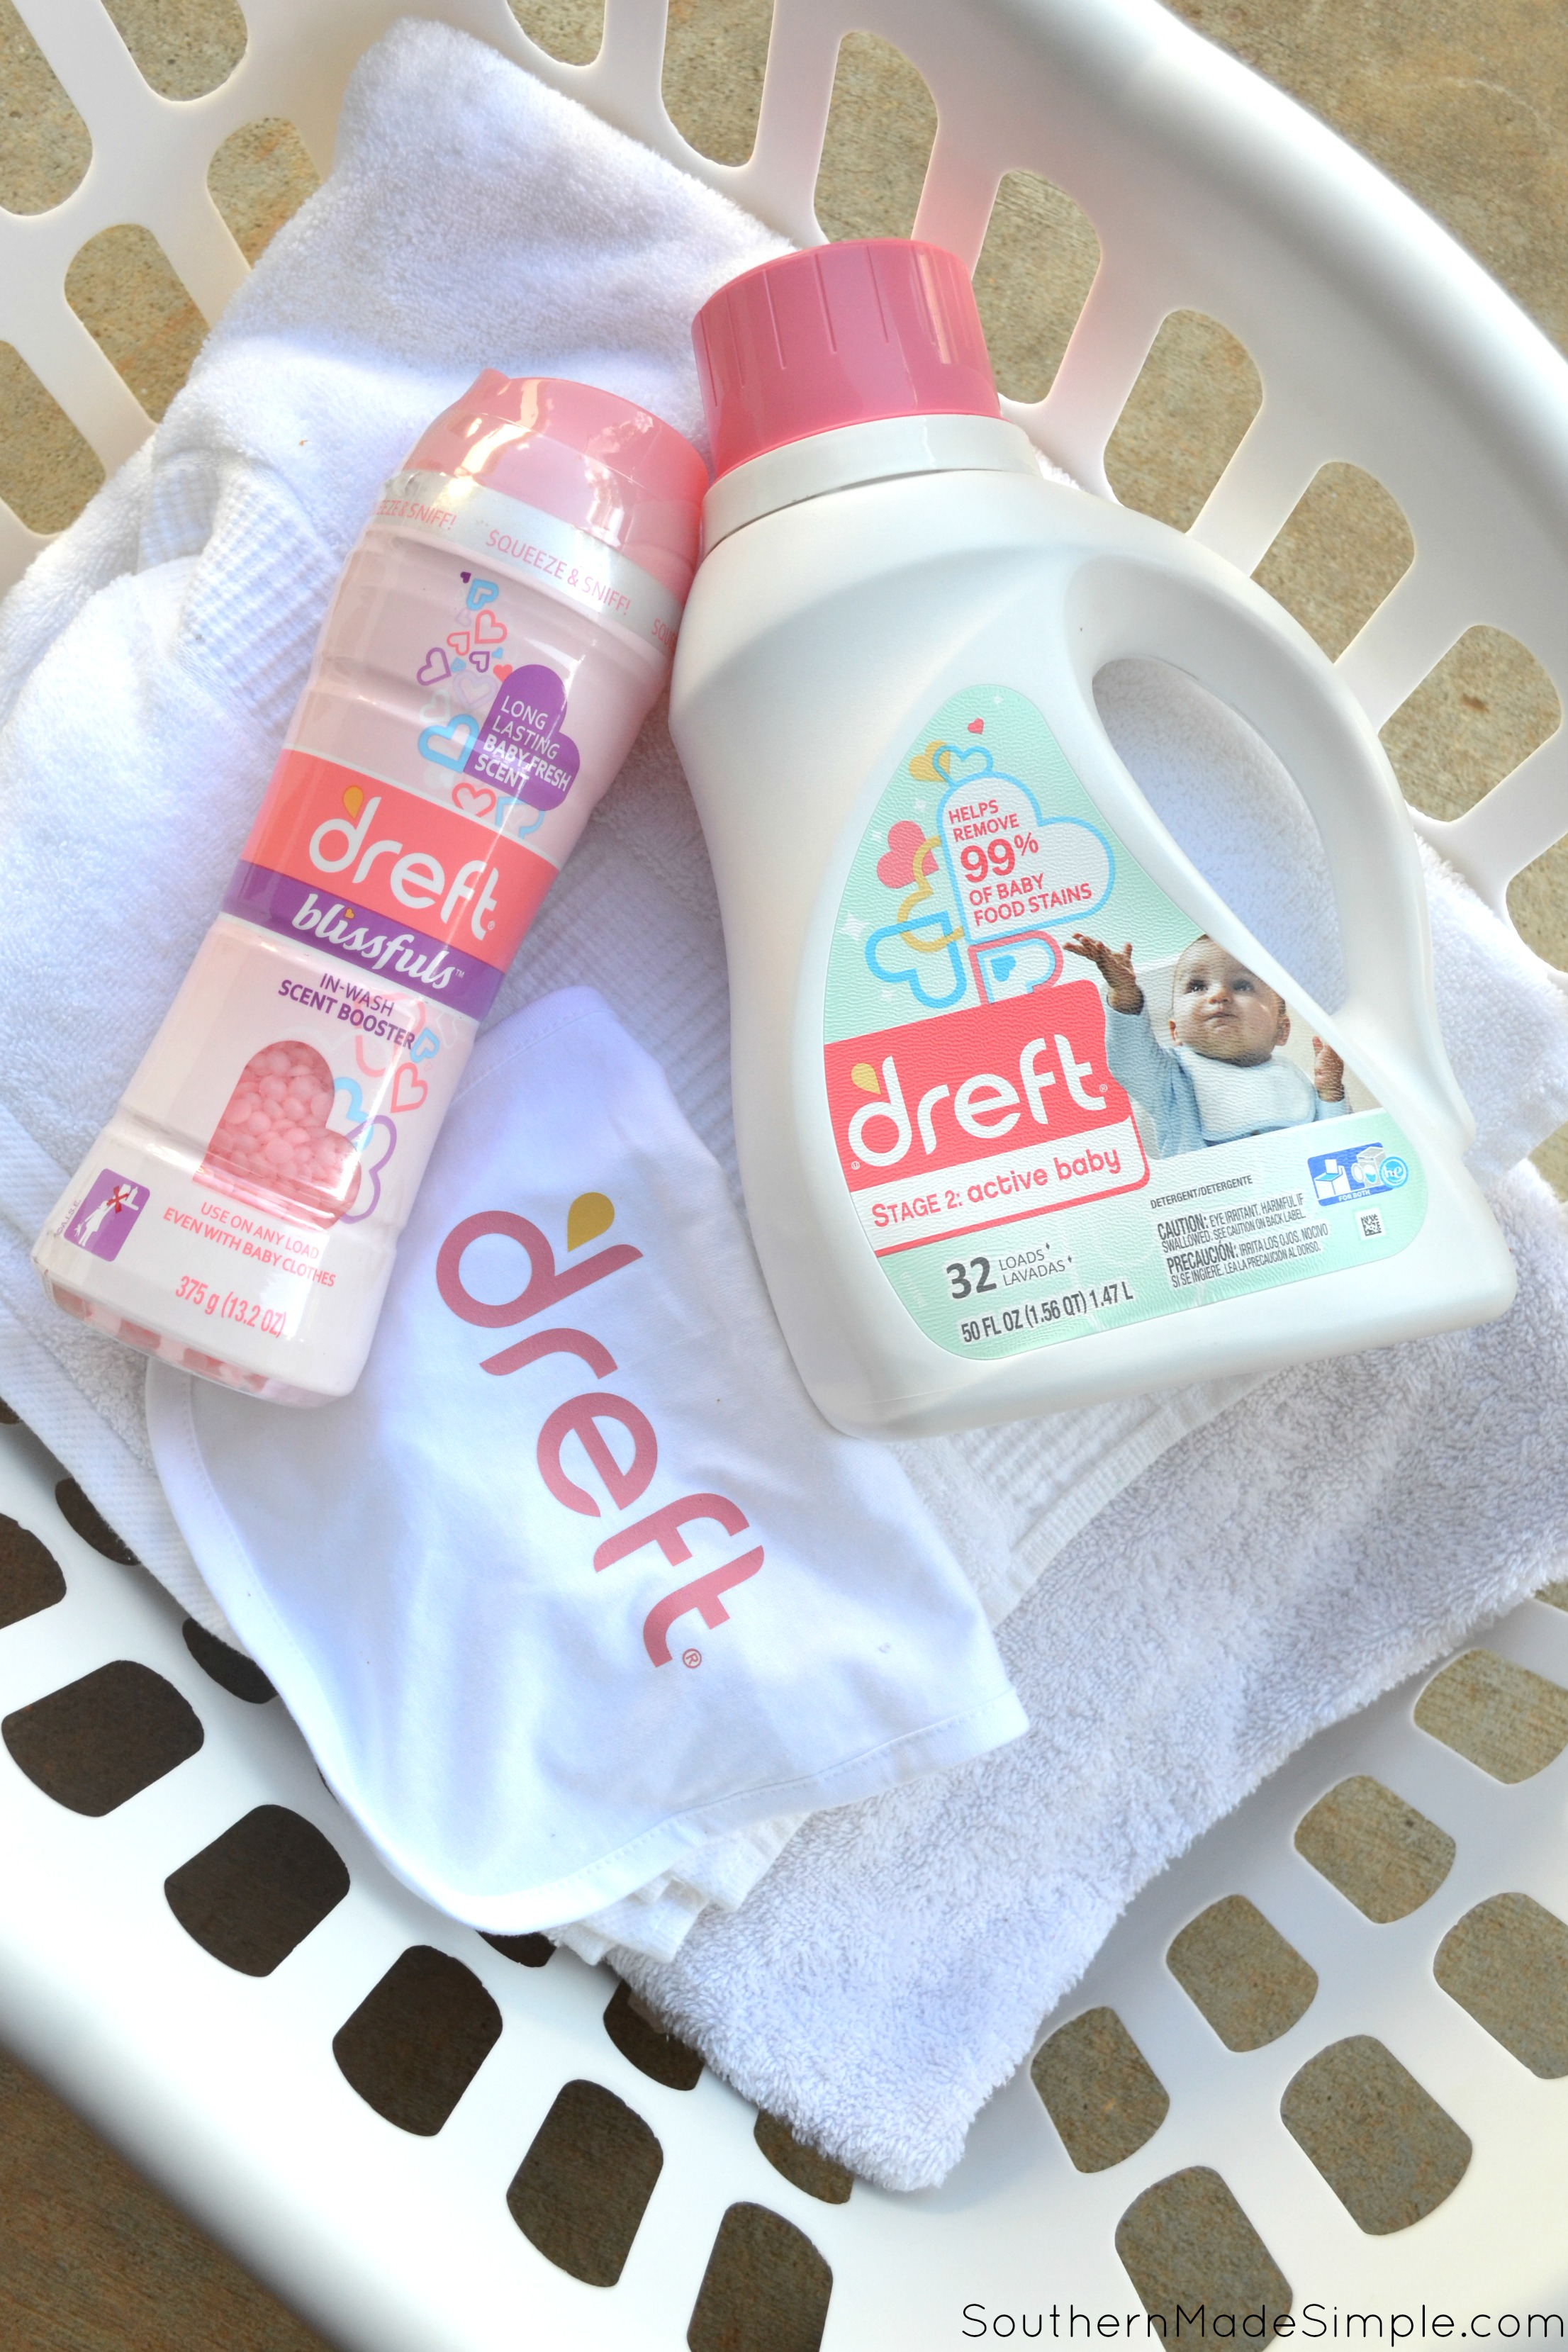 How I turn messes into memories with Dreft